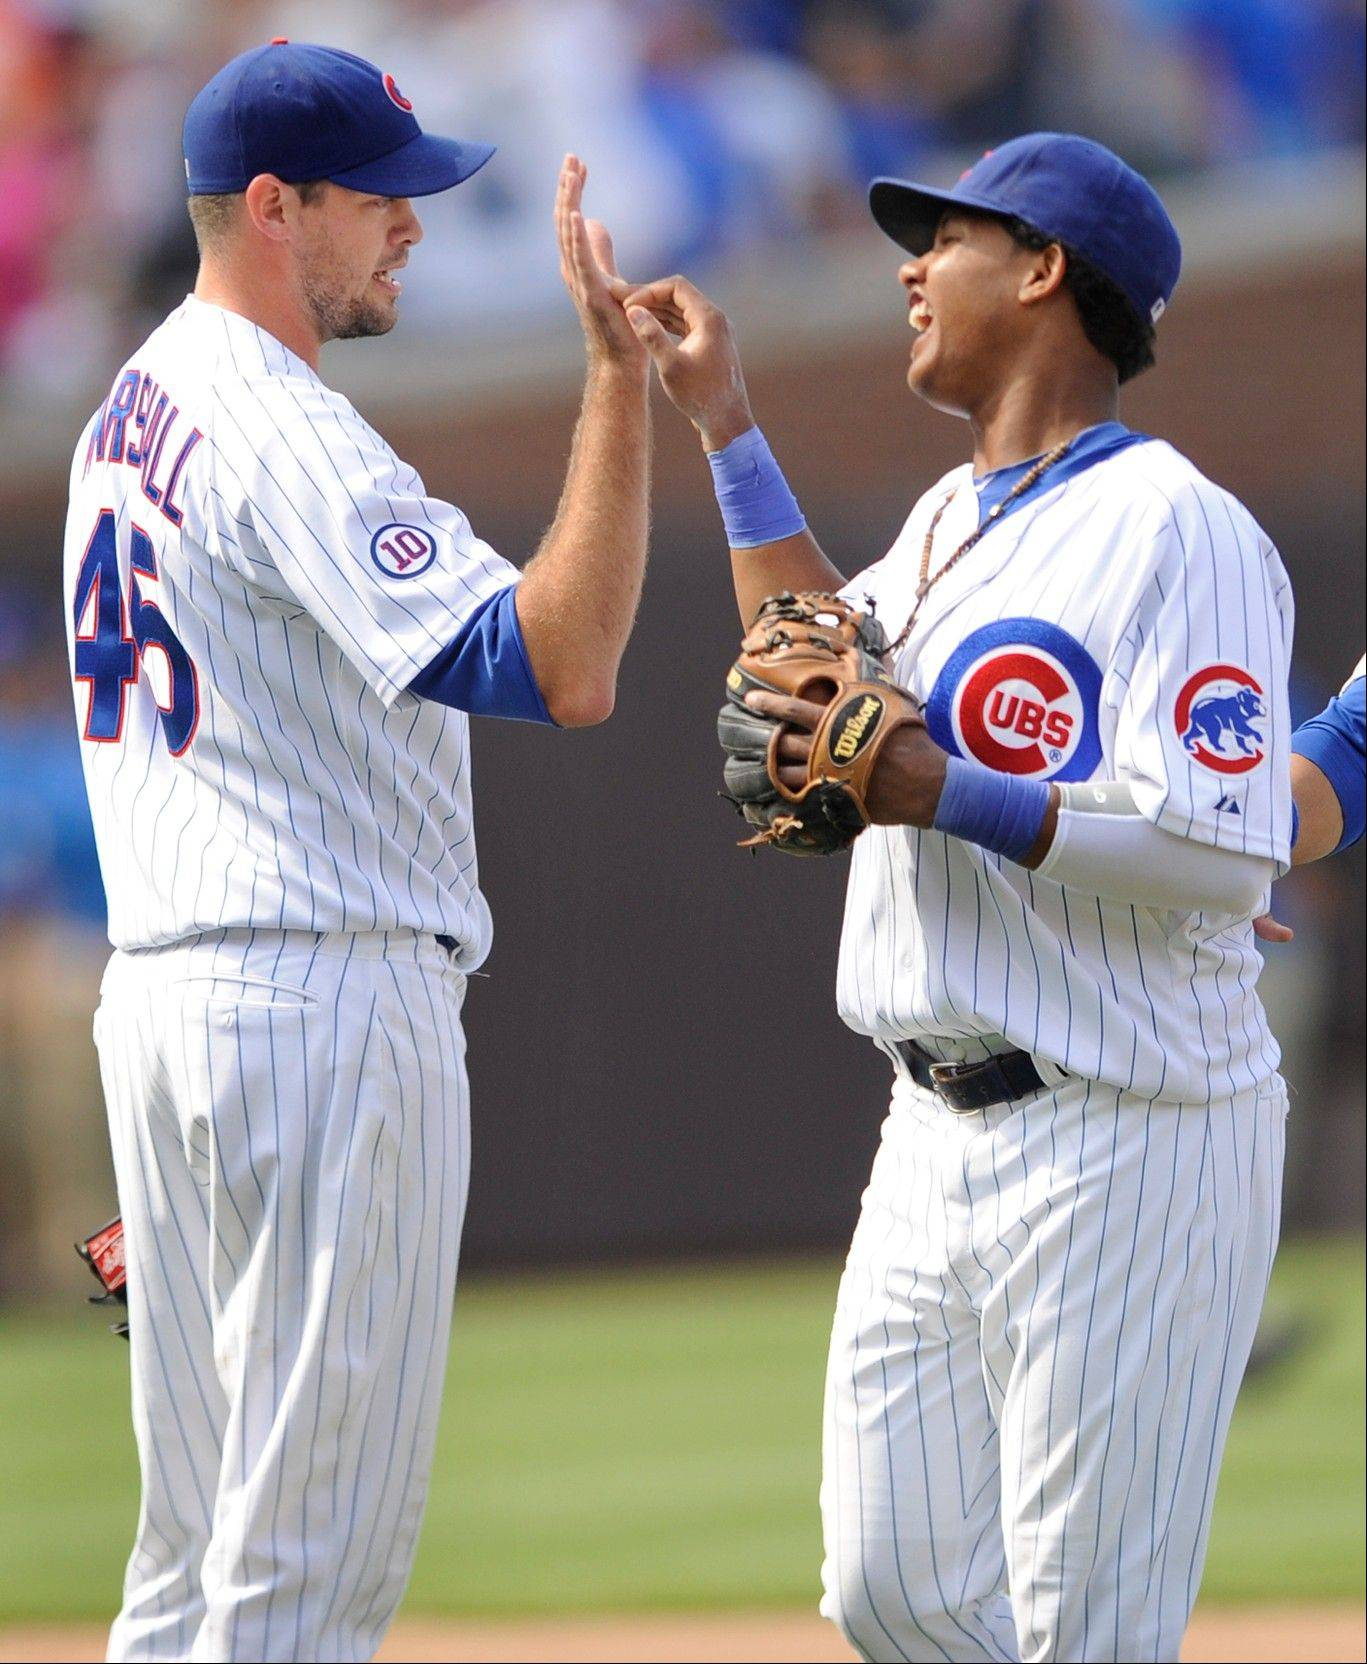 Sean Marshall, left, celebrates with Starlin Castro after picking up a save against the Florida Marlins at Wrigley Field.